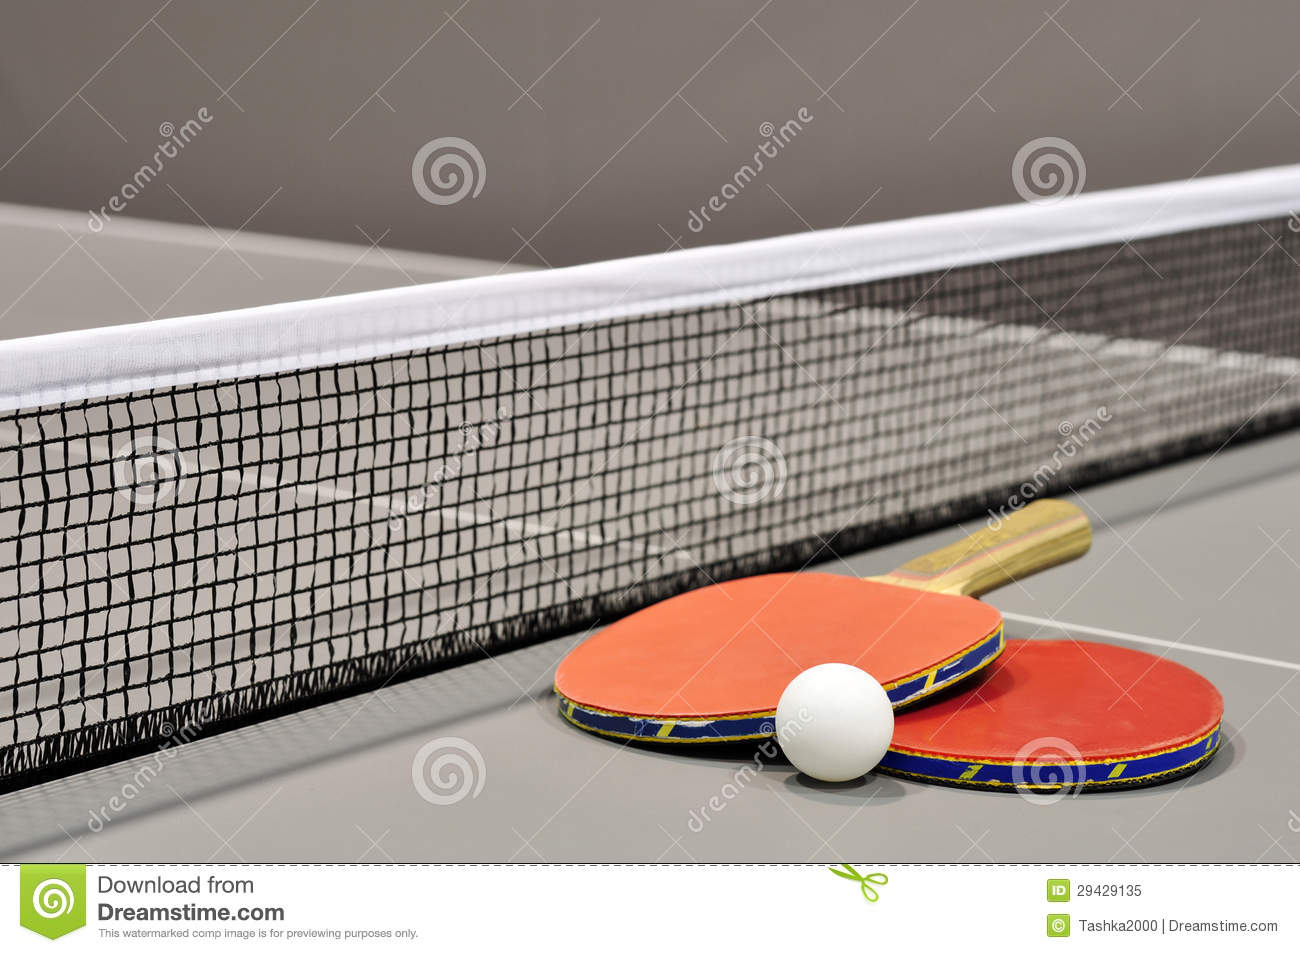 Equipment for table tennis royalty free stock photo image 29429135 - Equipment for table tennis ...